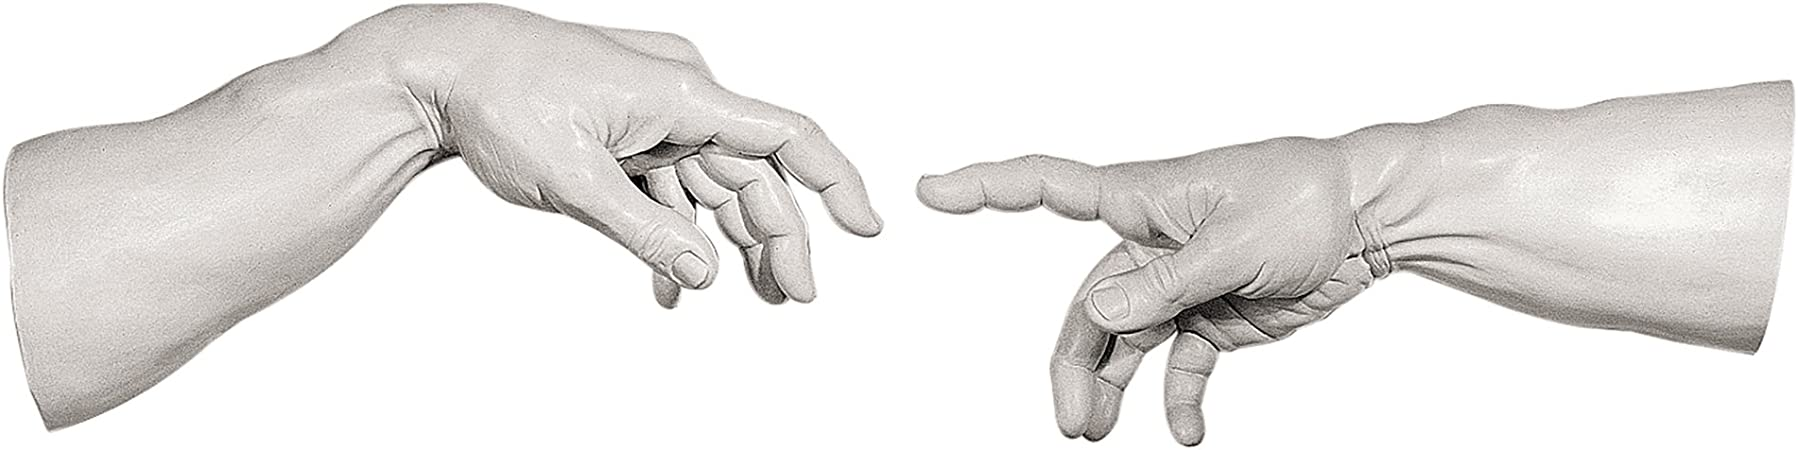 Design Toscano The Offering Hands Wall Sculpture Polyresin 28 cm Antique Stone